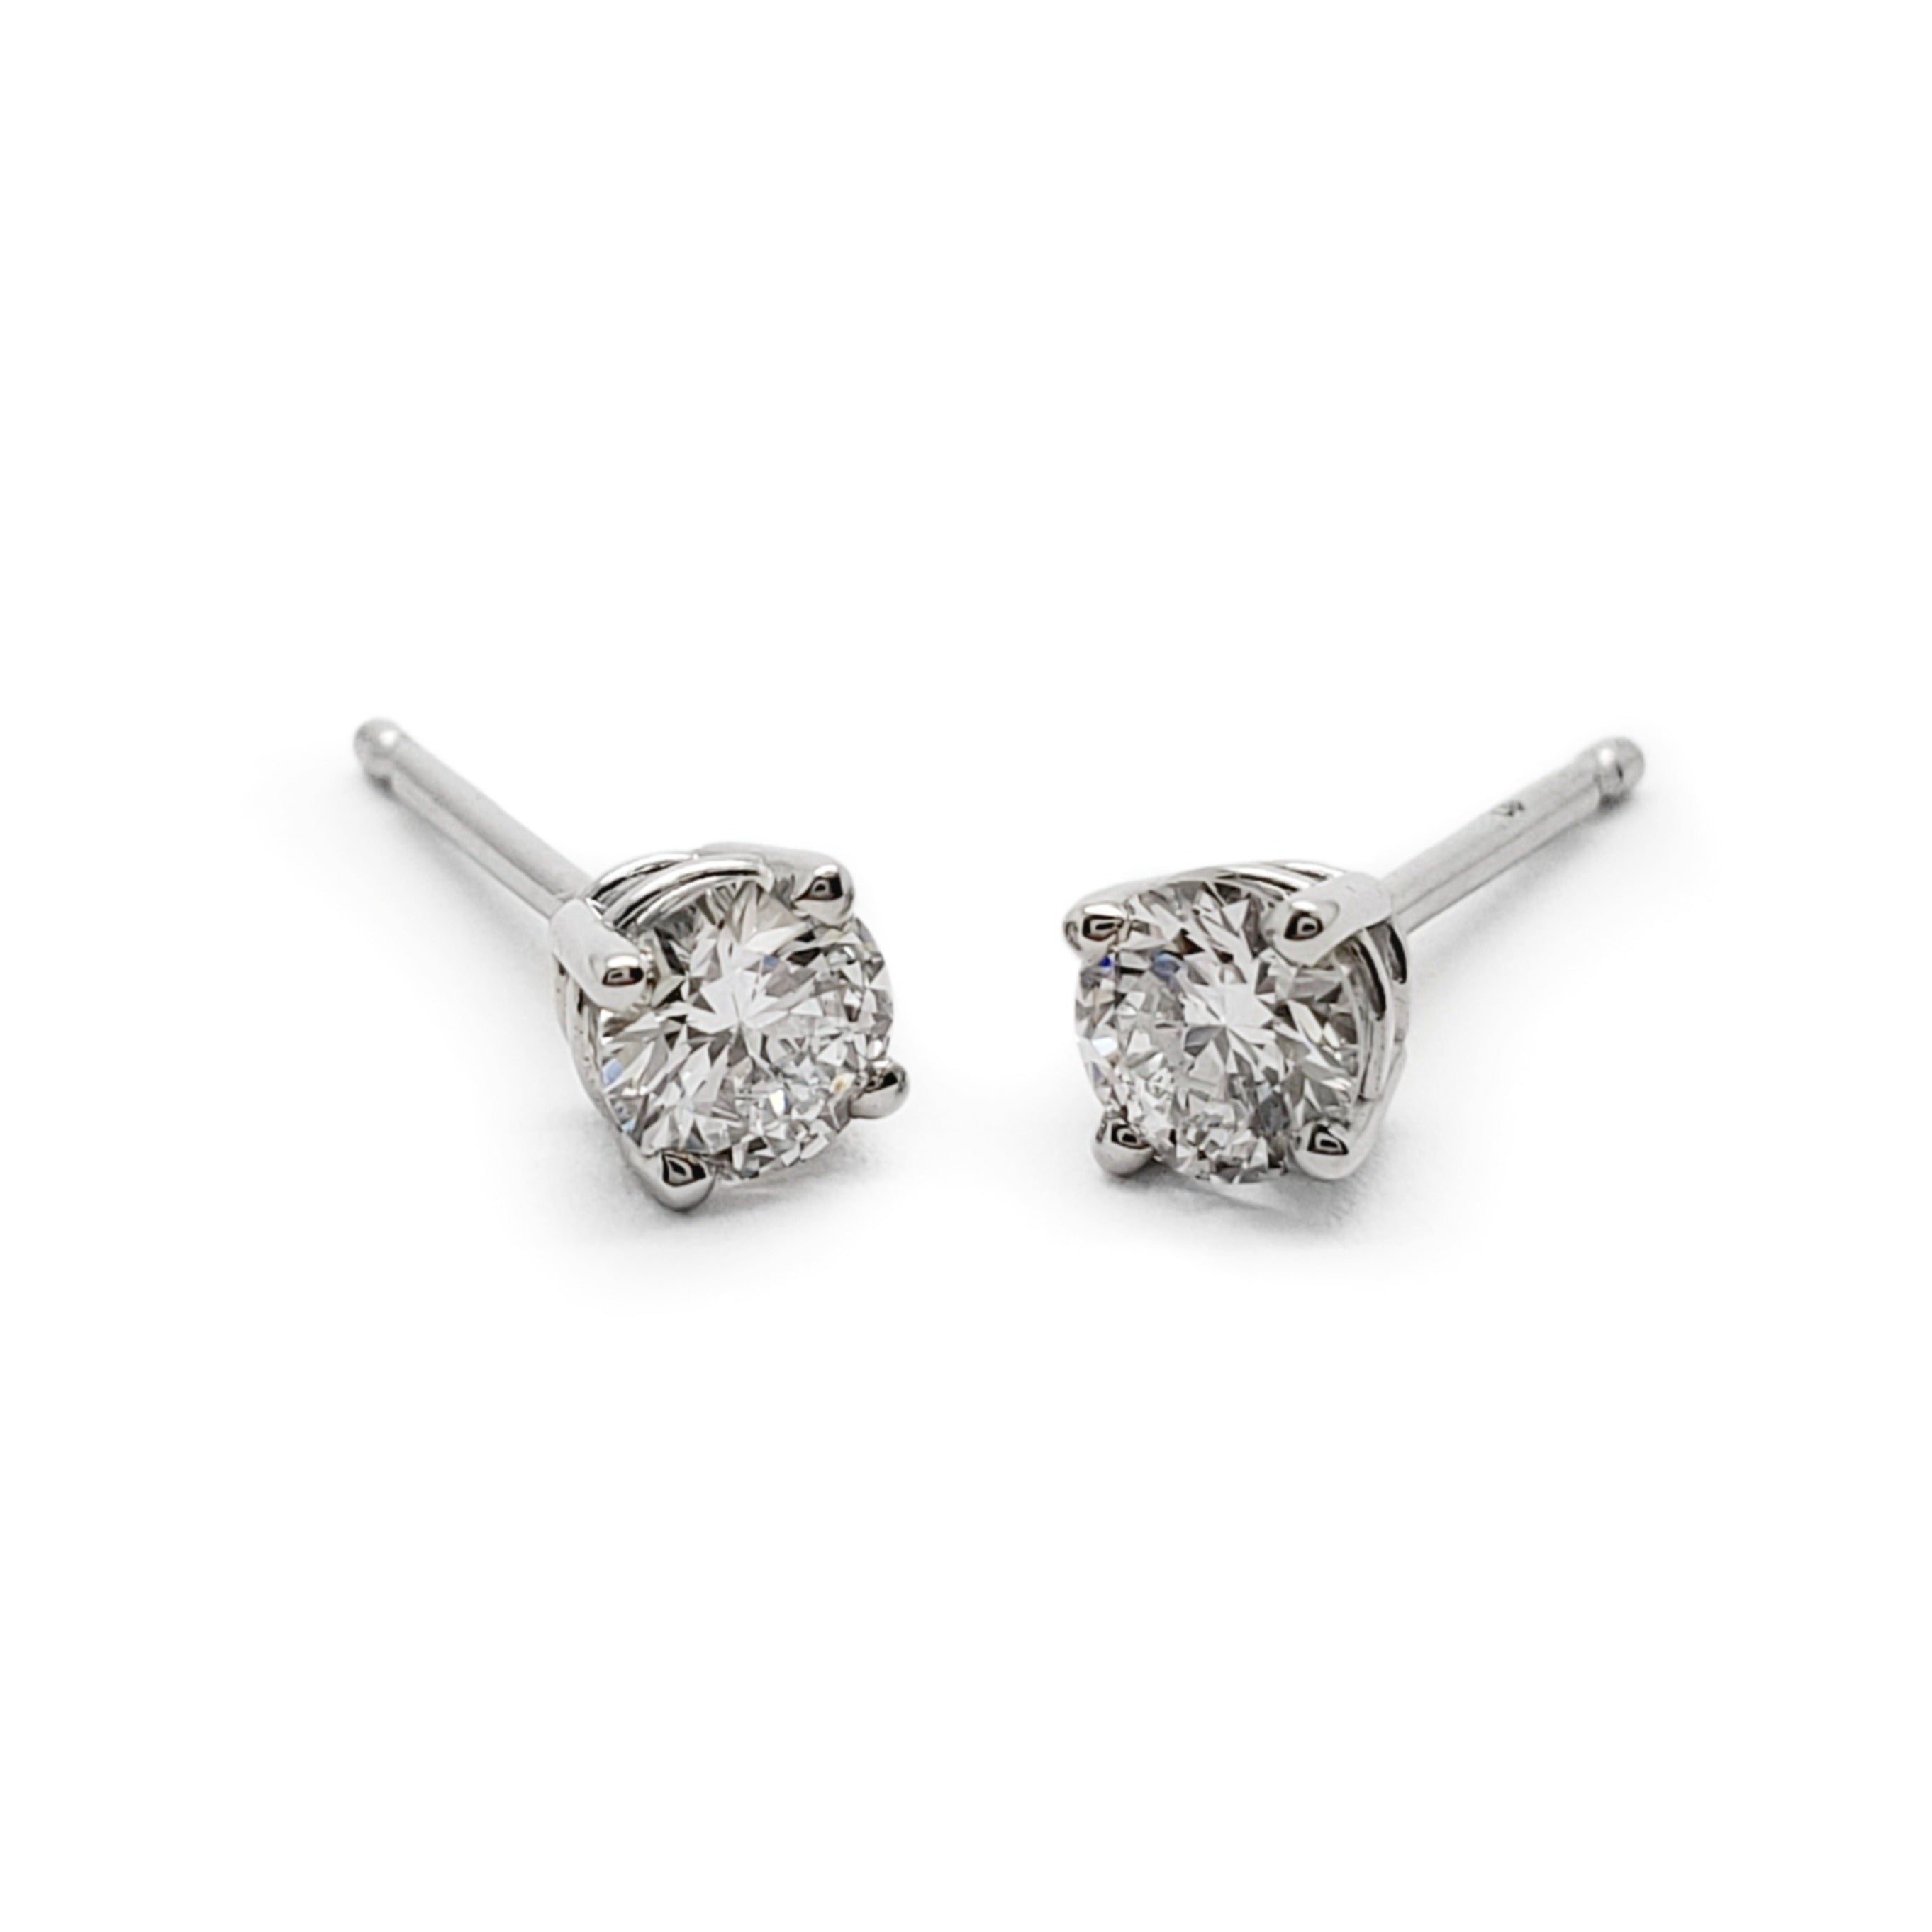 Lab Grown Diamond Earrings | Era Design Vancouver Canada